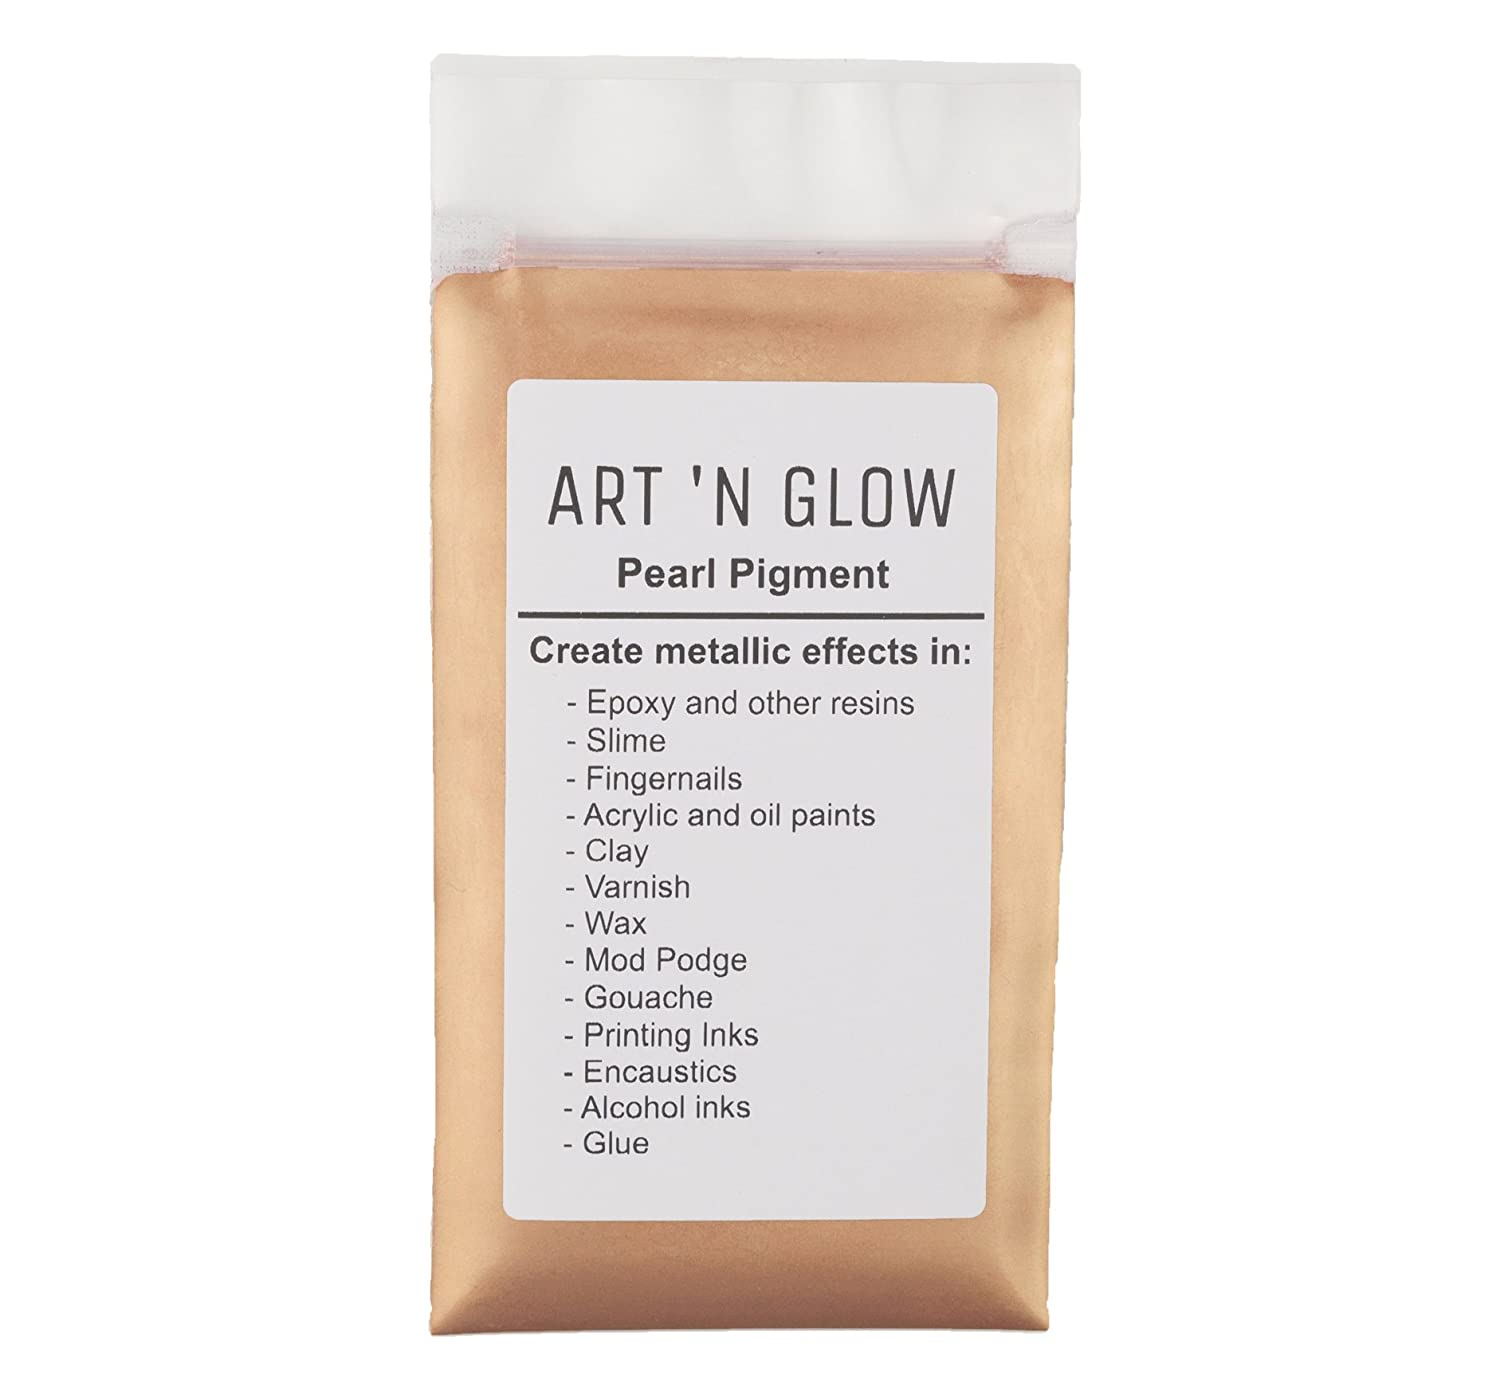 Mica Pearl Pigment Powder (Rose Gold) - (.88 Ounce/25 Grams) - 10+ Colors Available Art ' N Glow